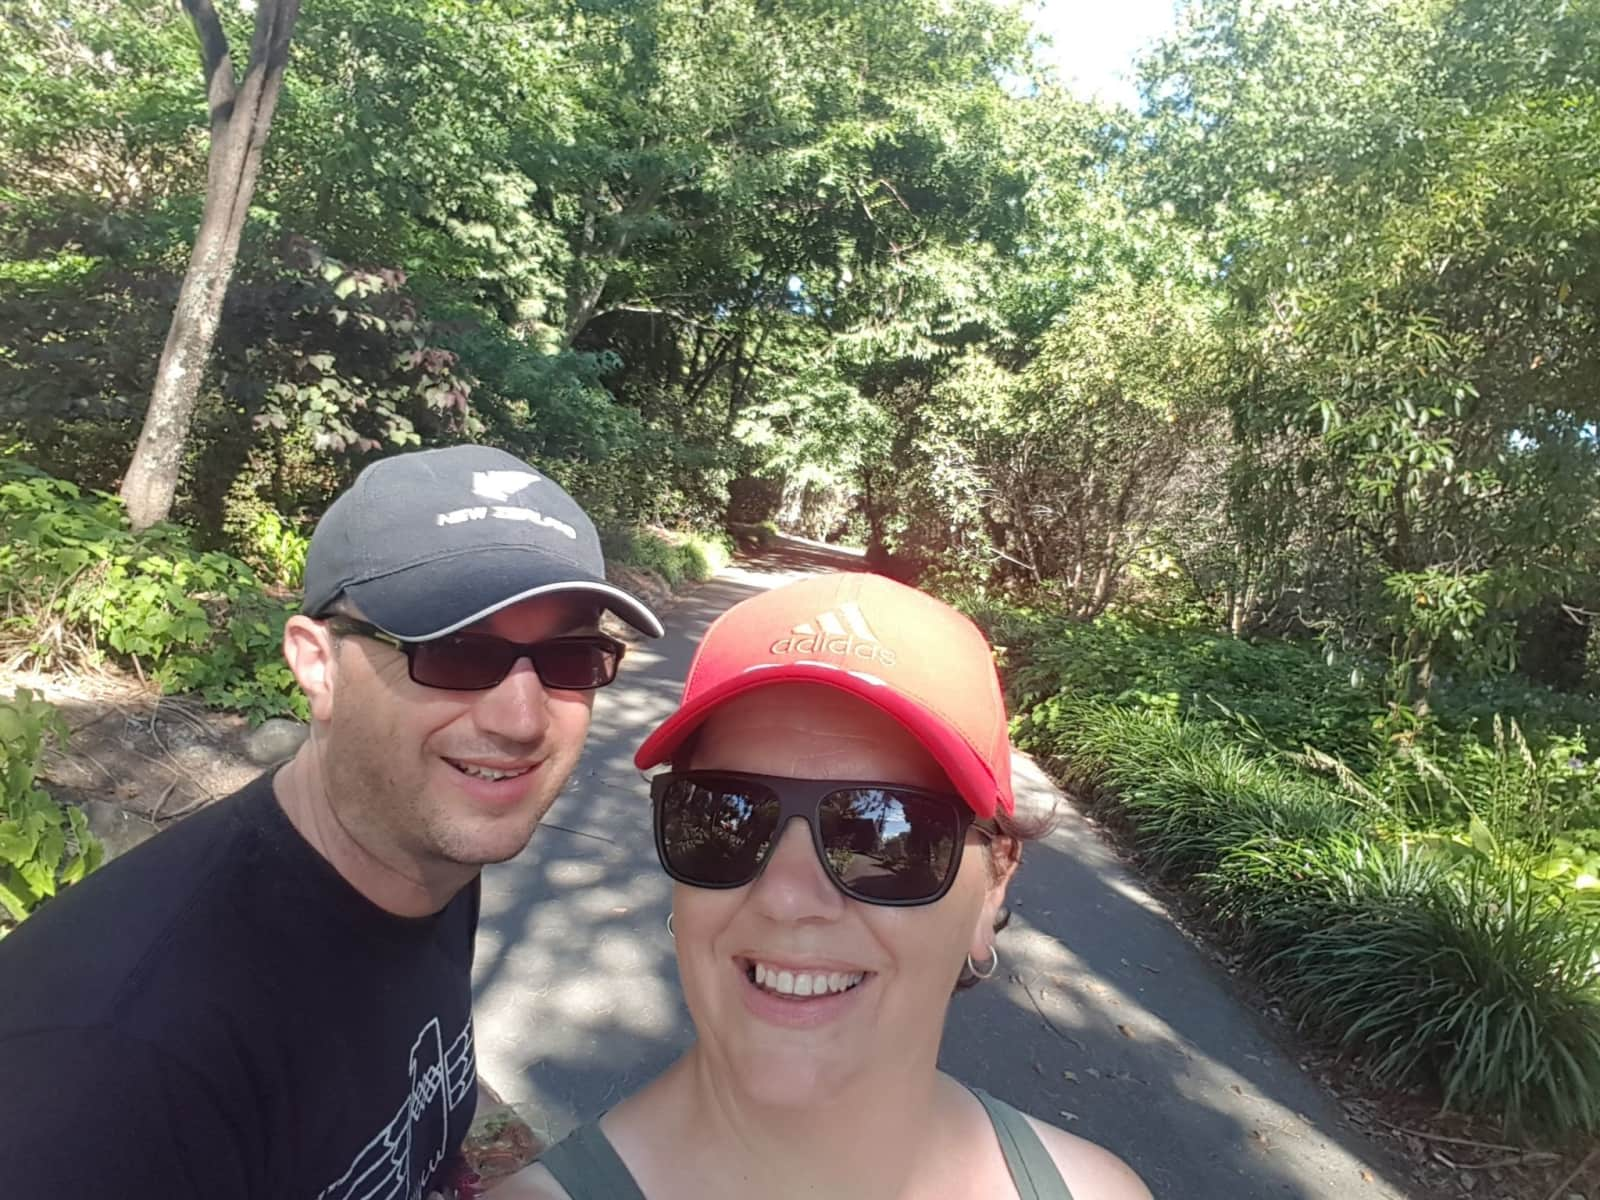 Michelle and simon from Nelson, New Zealand